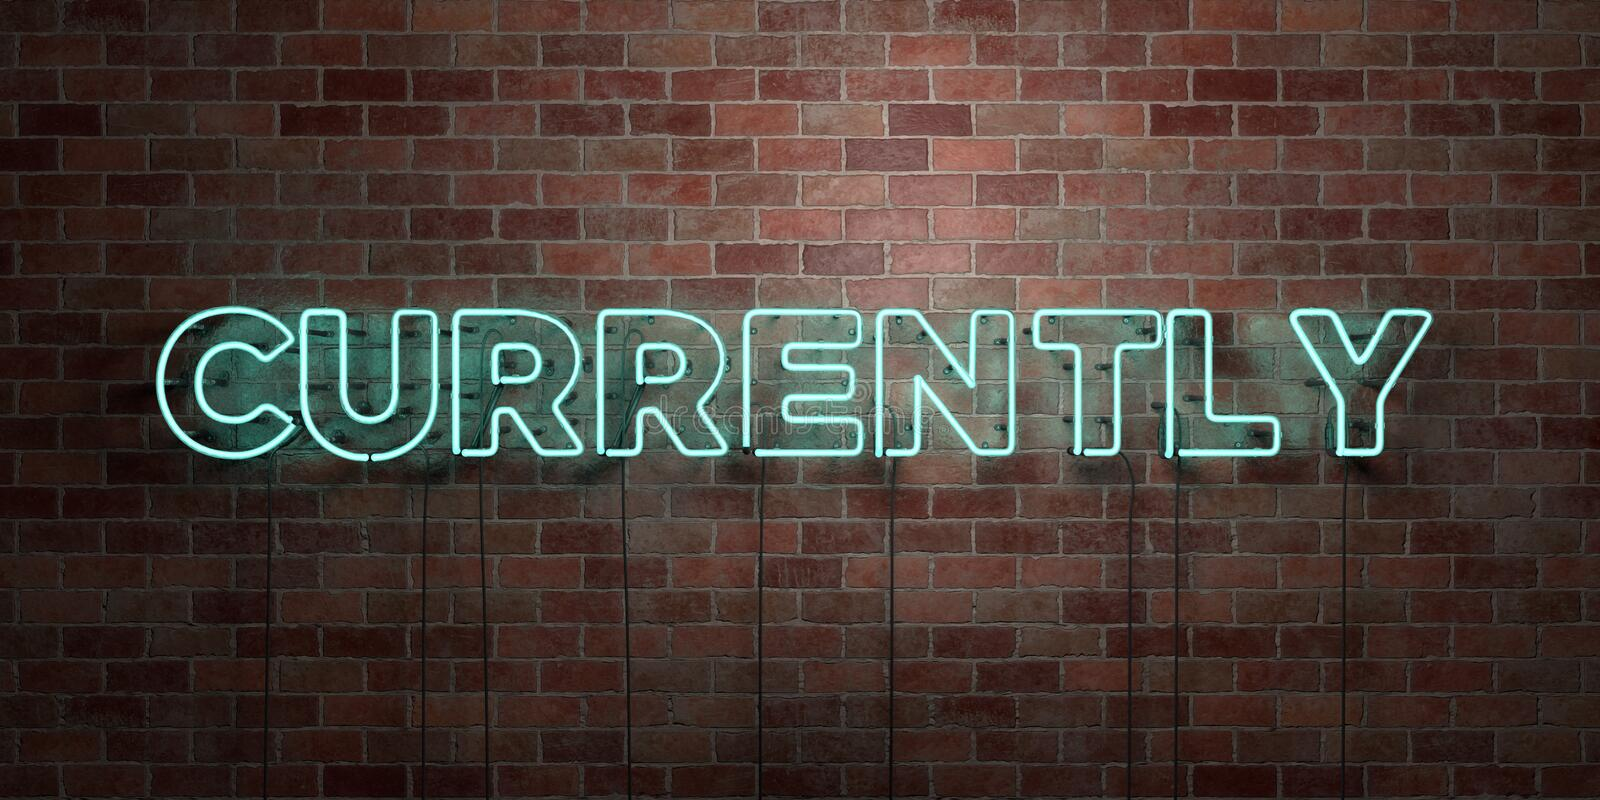 CURRENTLY - fluorescent Neon tube Sign on brickwork - Front view - 3D rendered royalty free stock picture. Can be used for online banner ads and direct mailers royalty free illustration